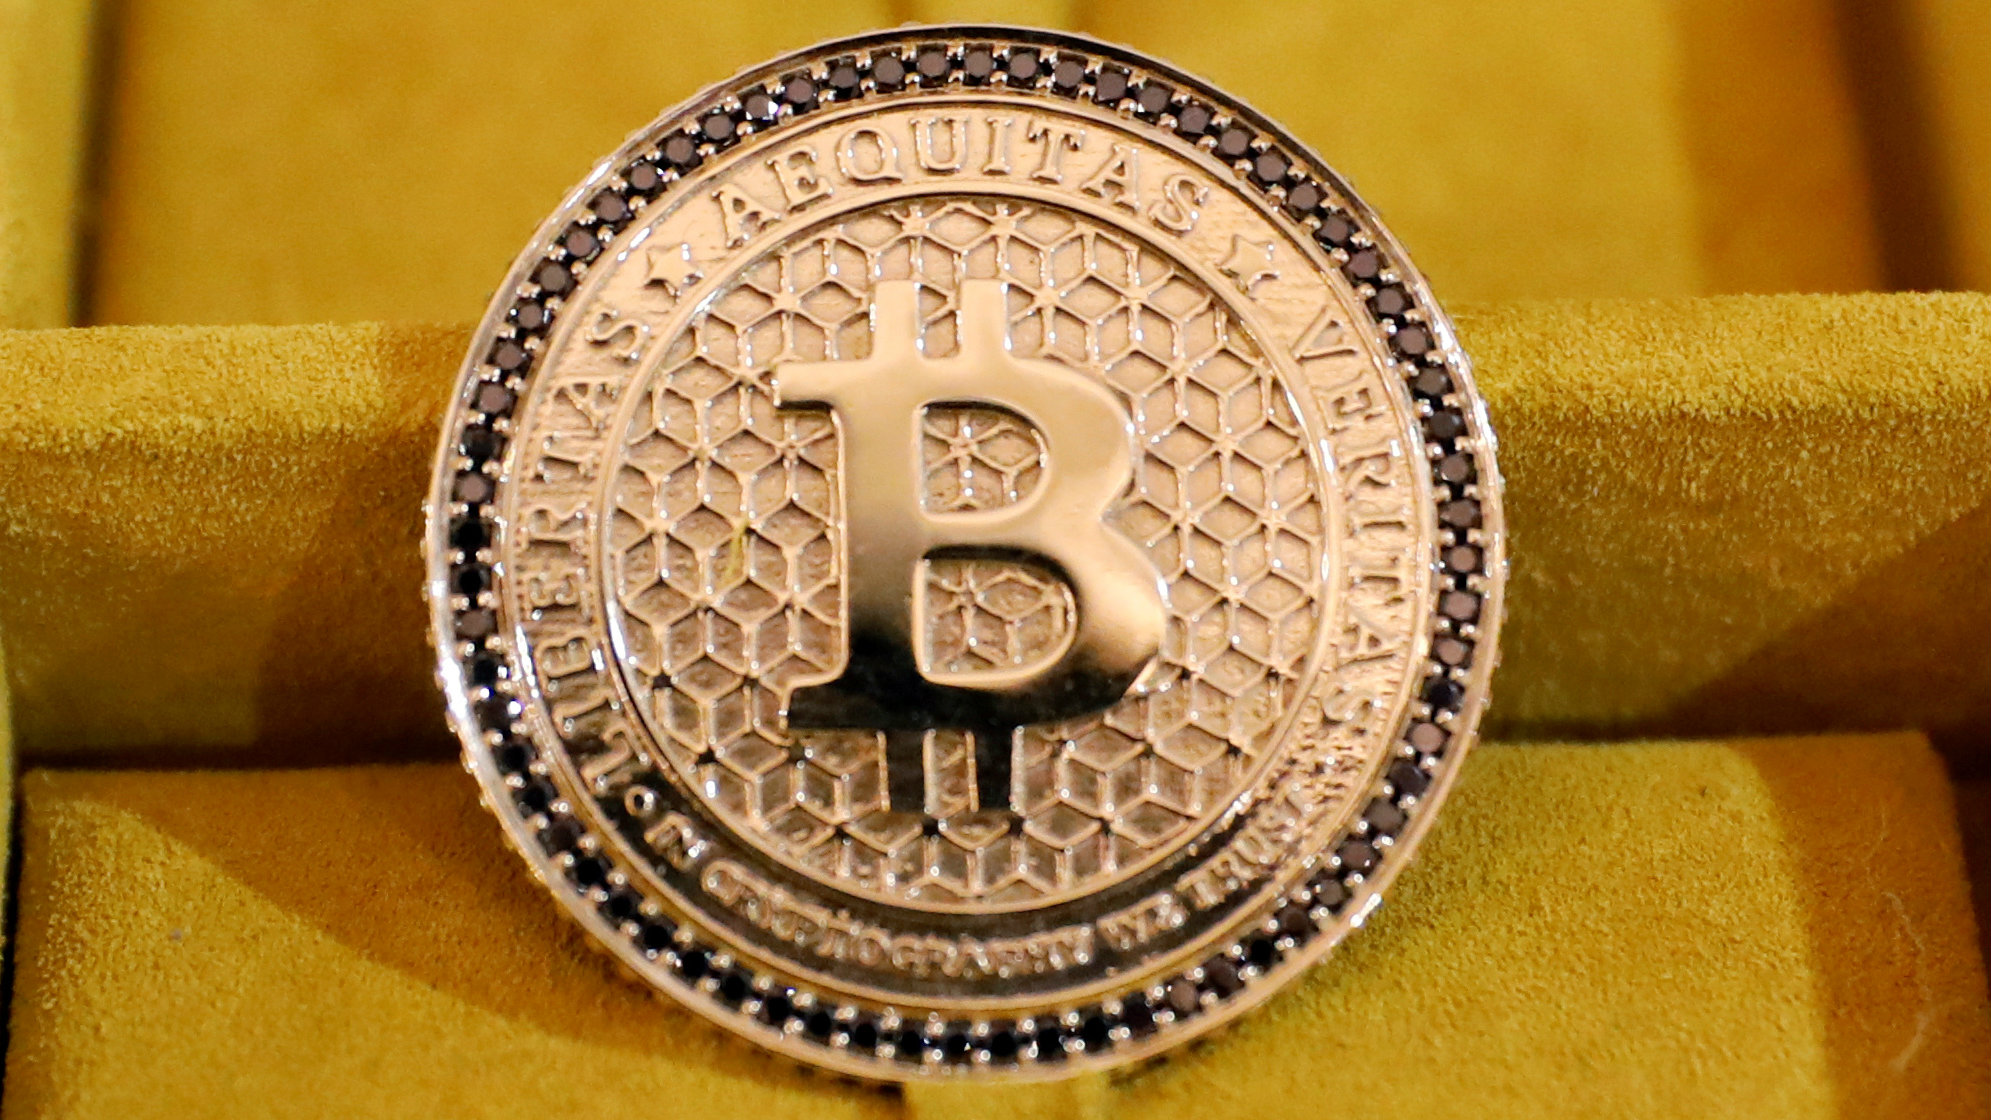 Jewelry with the Bitcoin logo on it